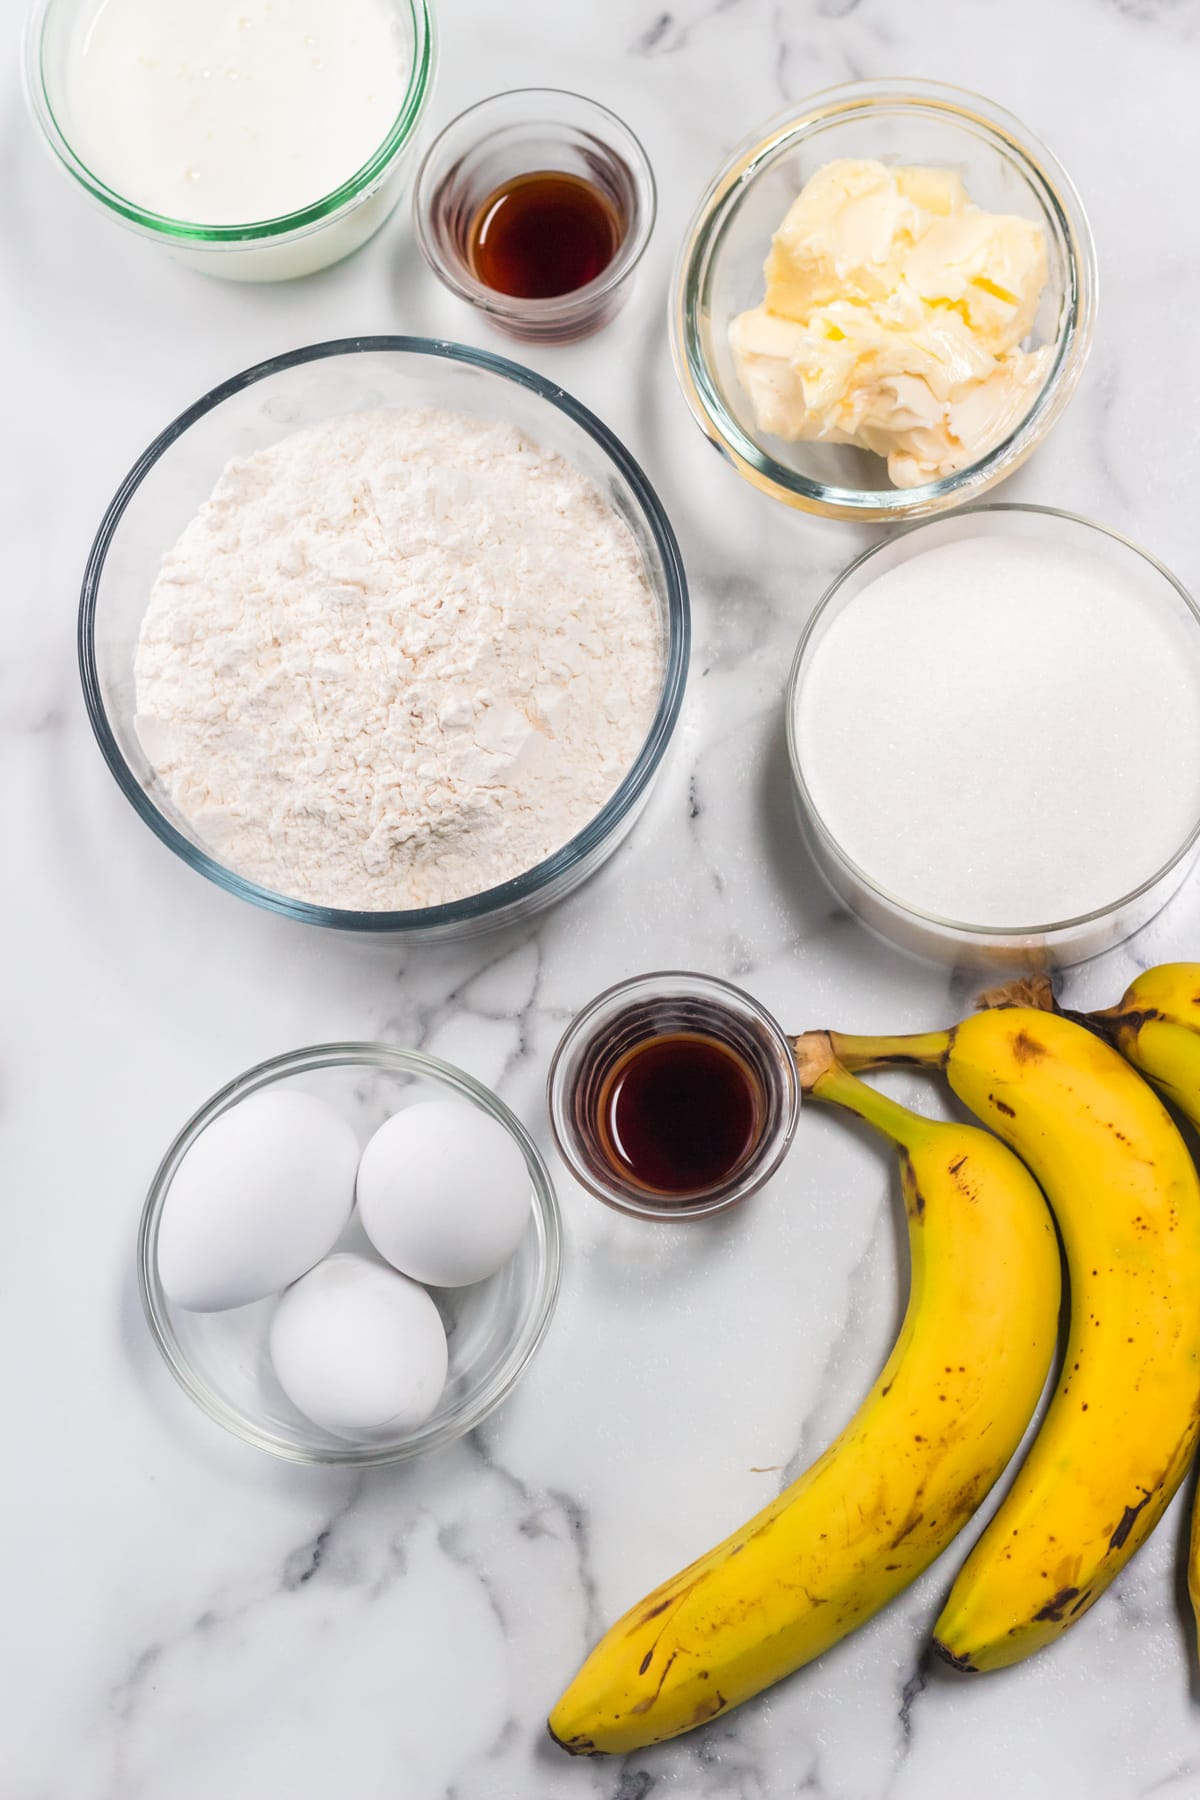 Banana cream cake ingredients laid out on table.